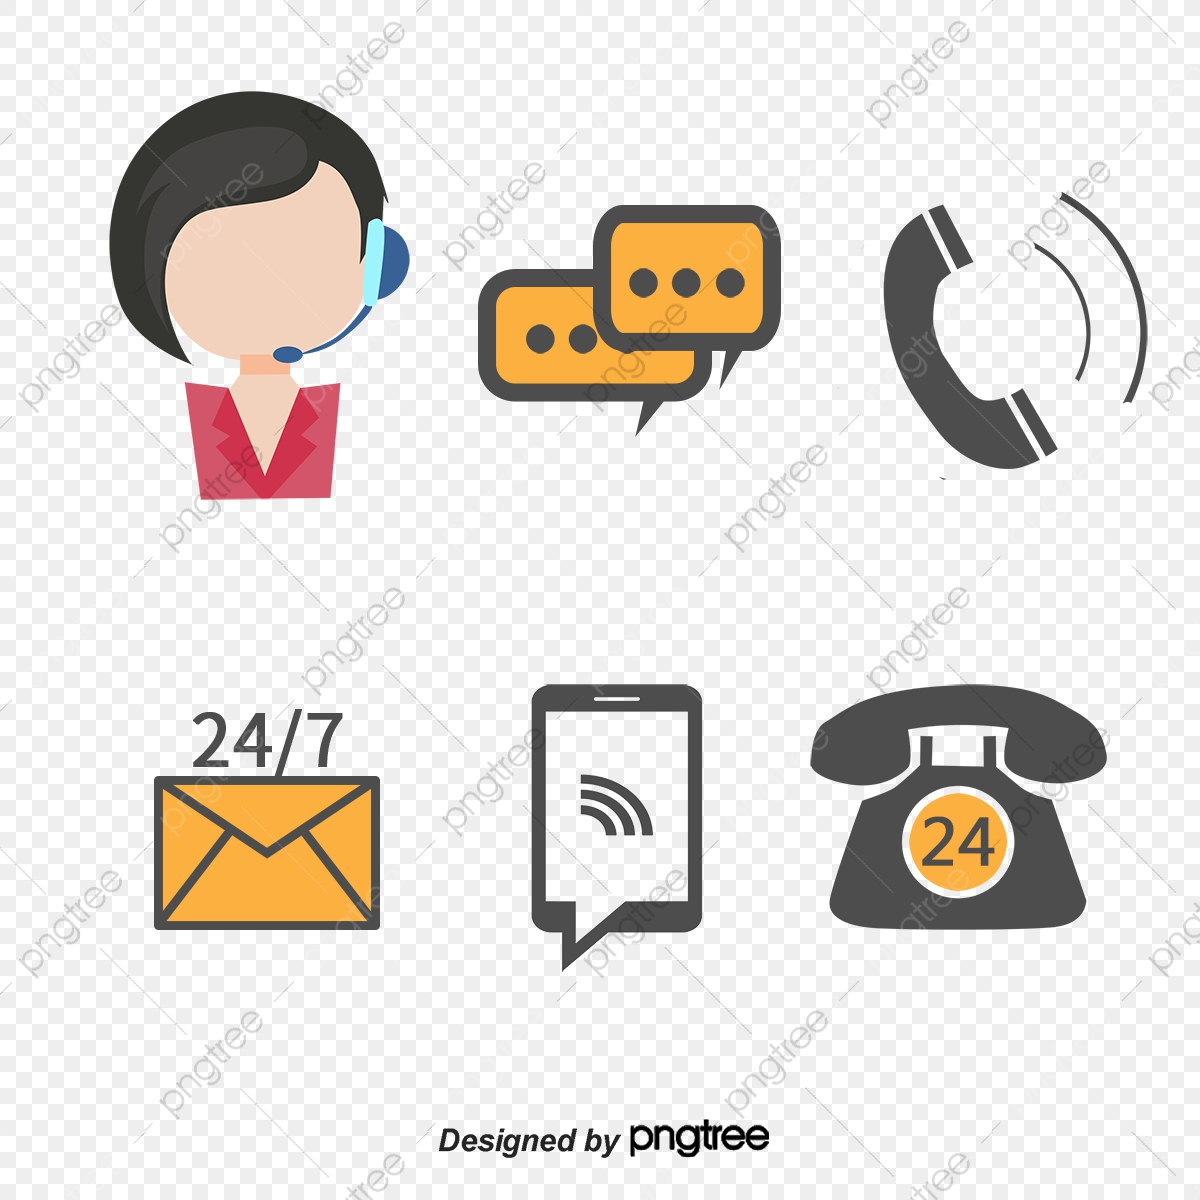 call center png vector psd and clipart with transparent background for free download pngtree https pngtree com freepng yellow call center 3493363 html